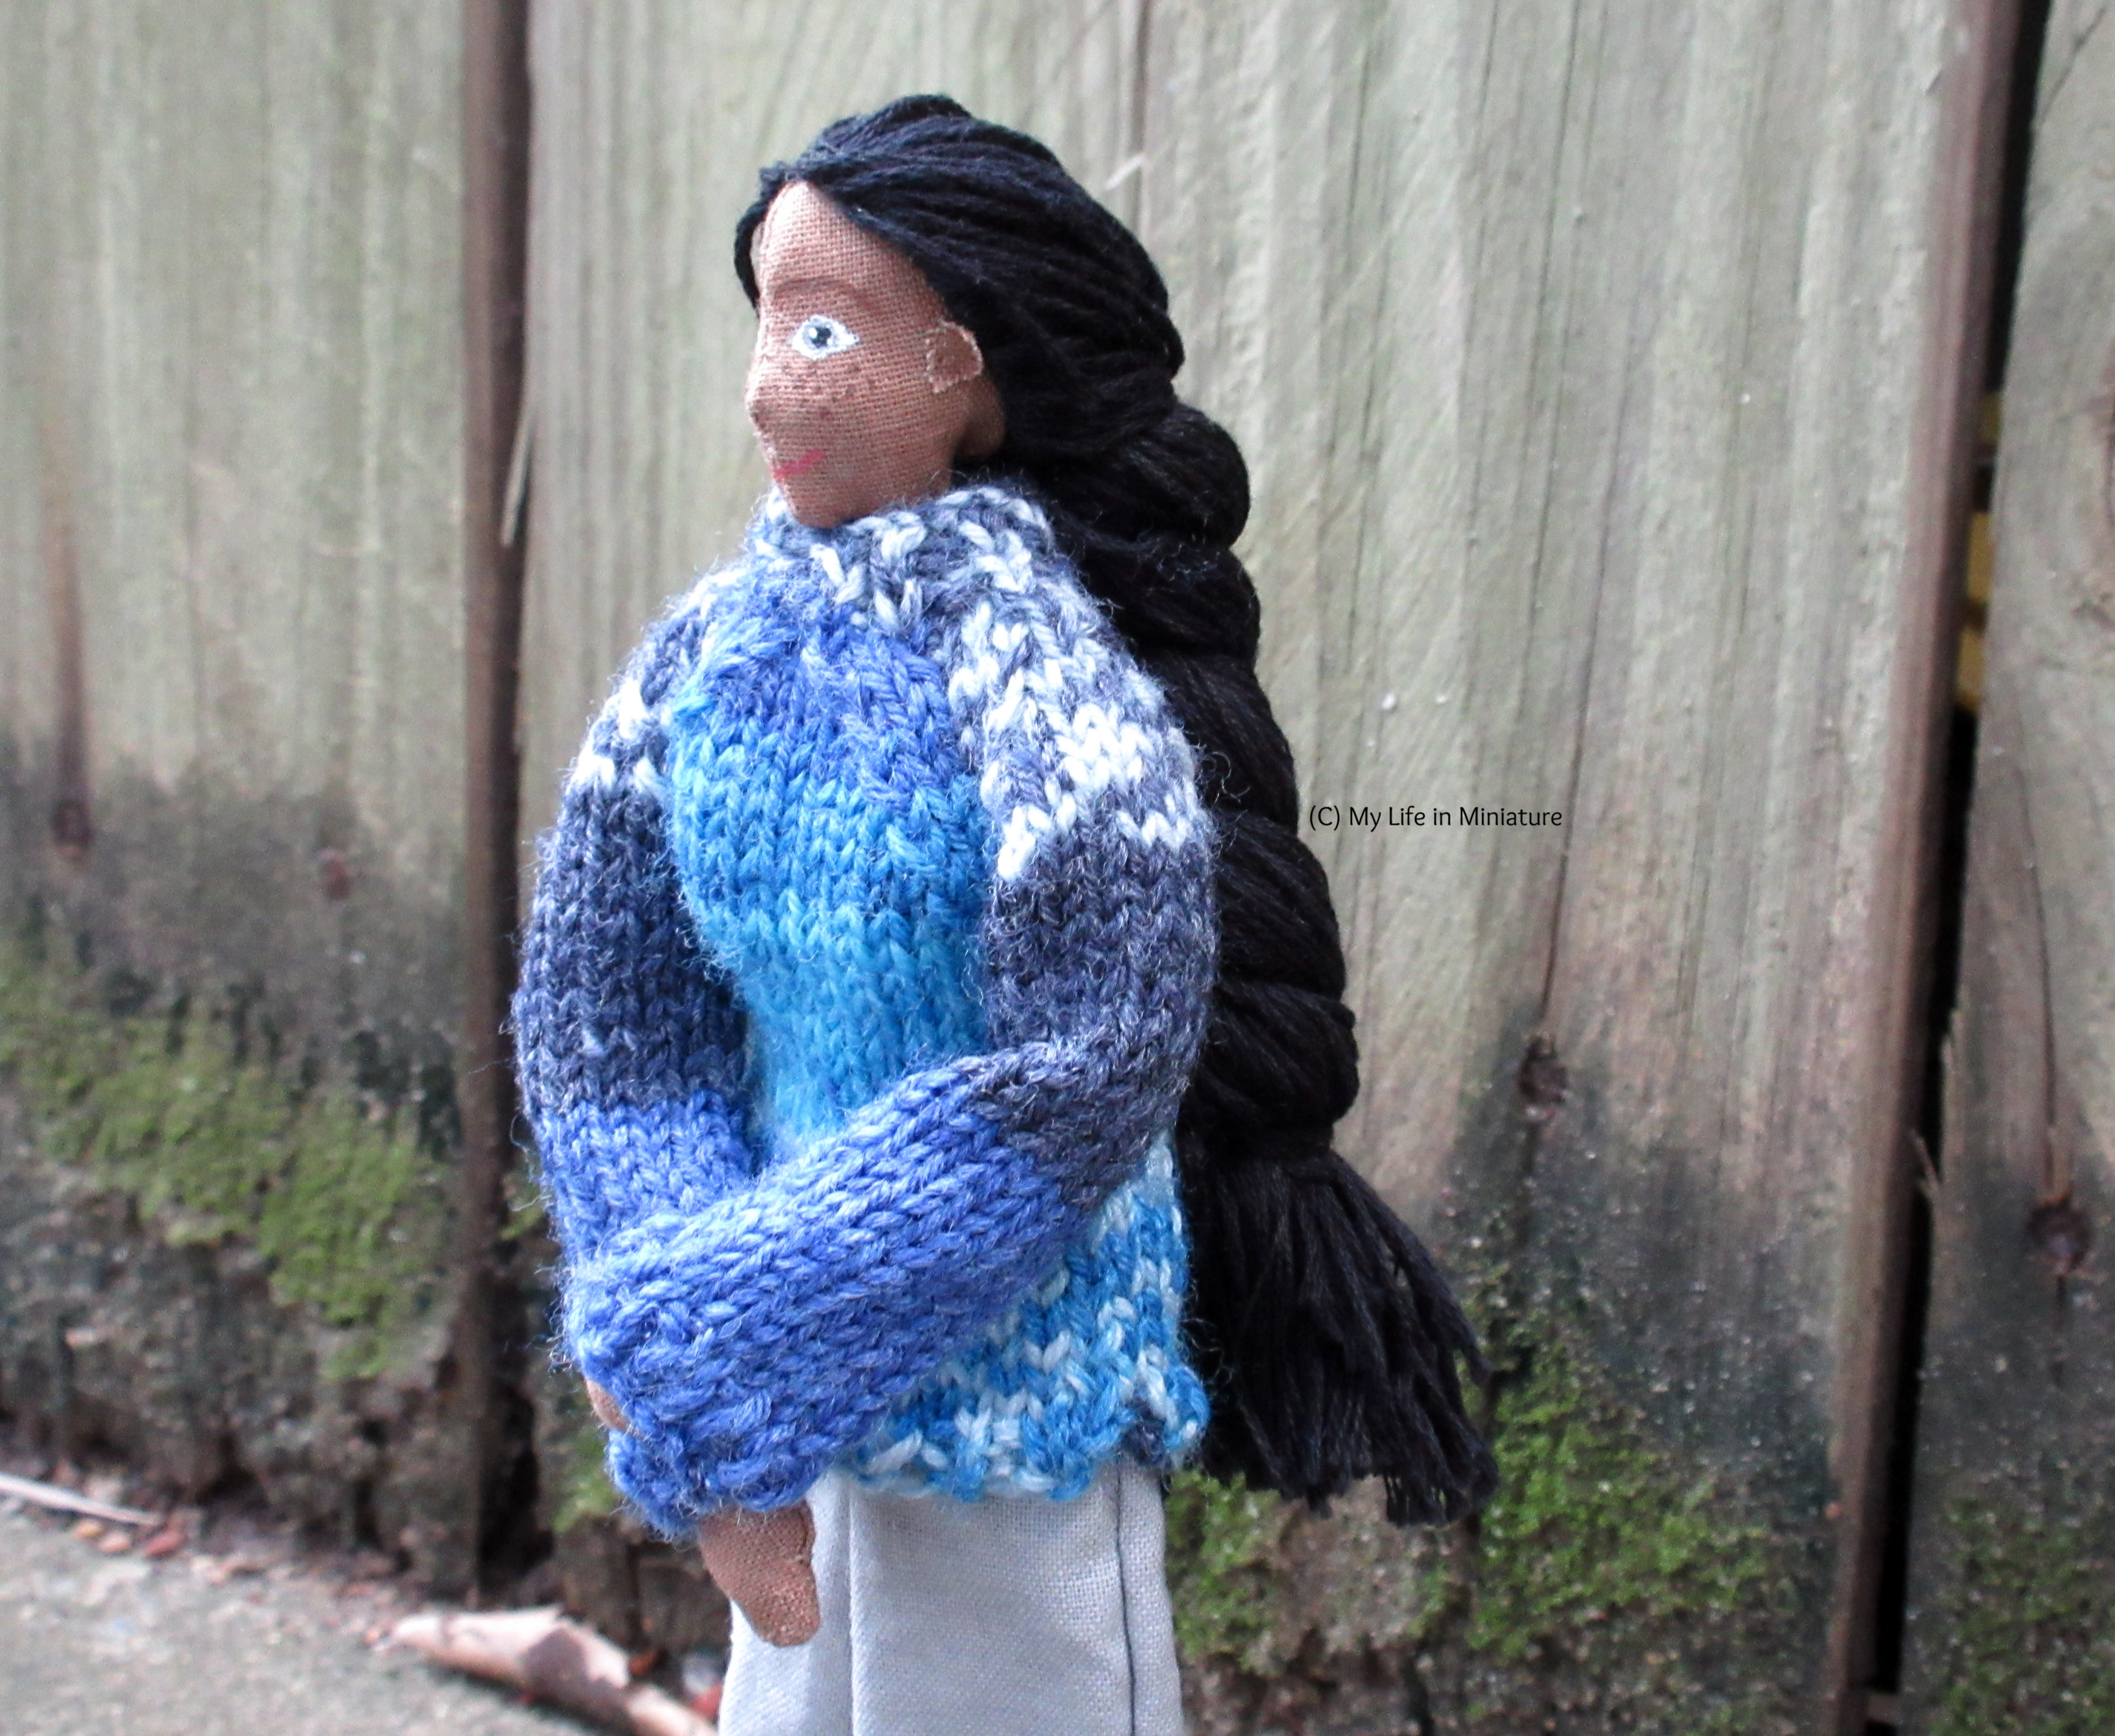 Petra holds her hands in front of her, looking off to the left. She wears the blue jumper, and her butt-length black braid is visible.